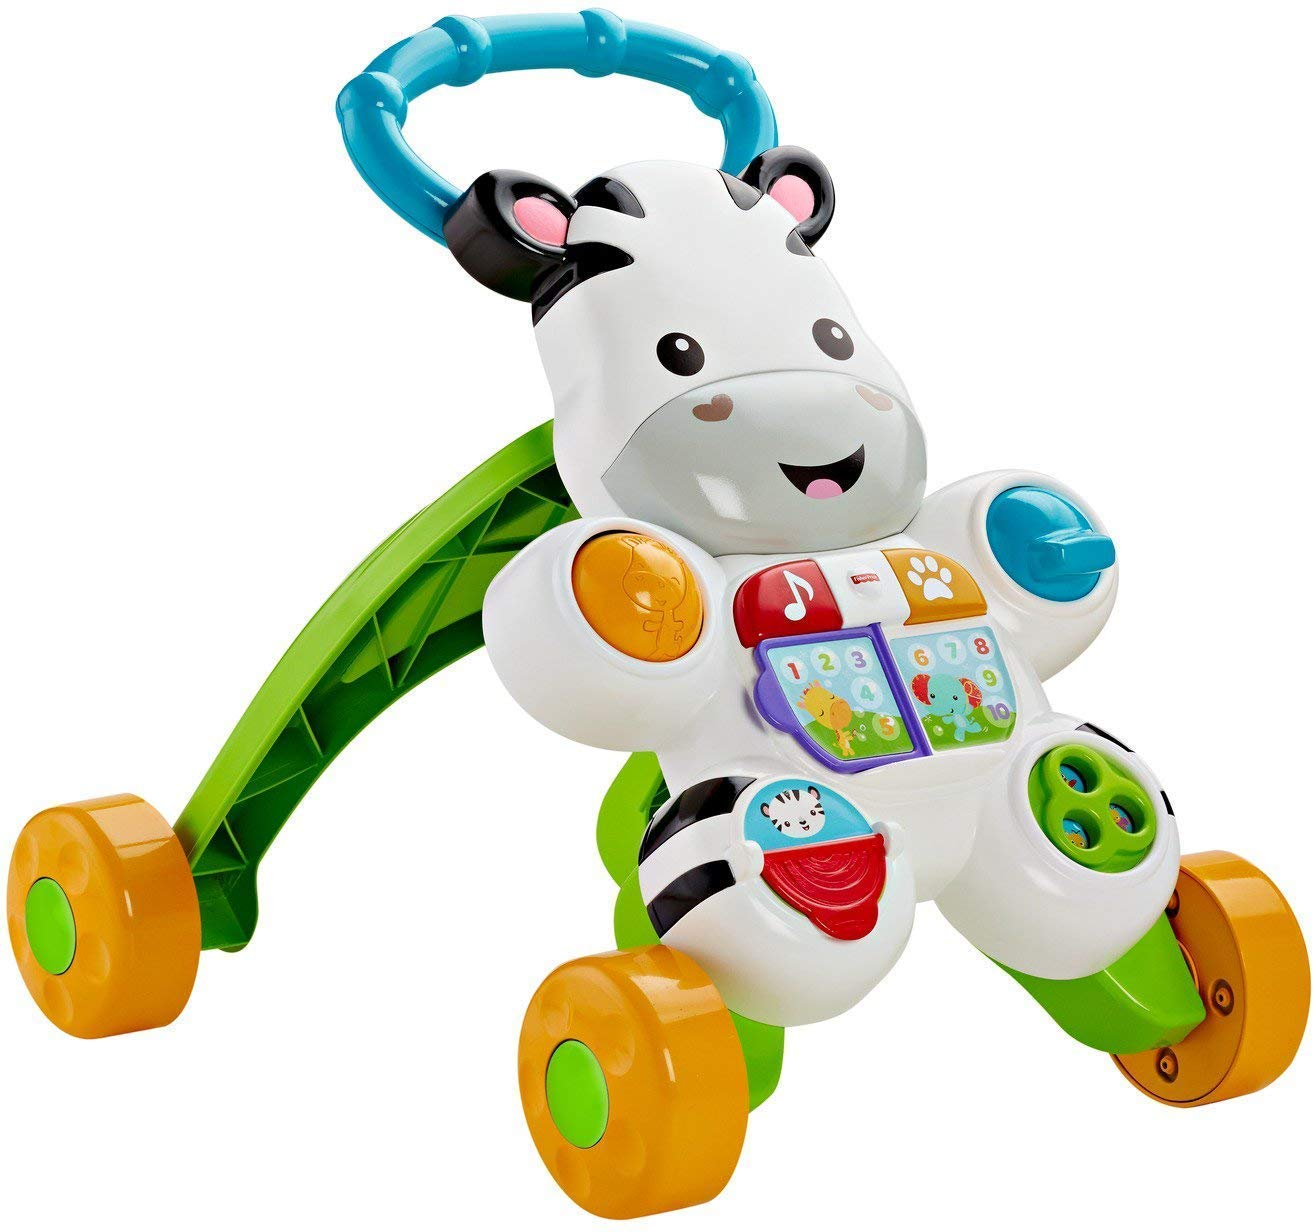 Fisher-Price Learn with Me Zebra Walker only $10.39! (was $24.99)